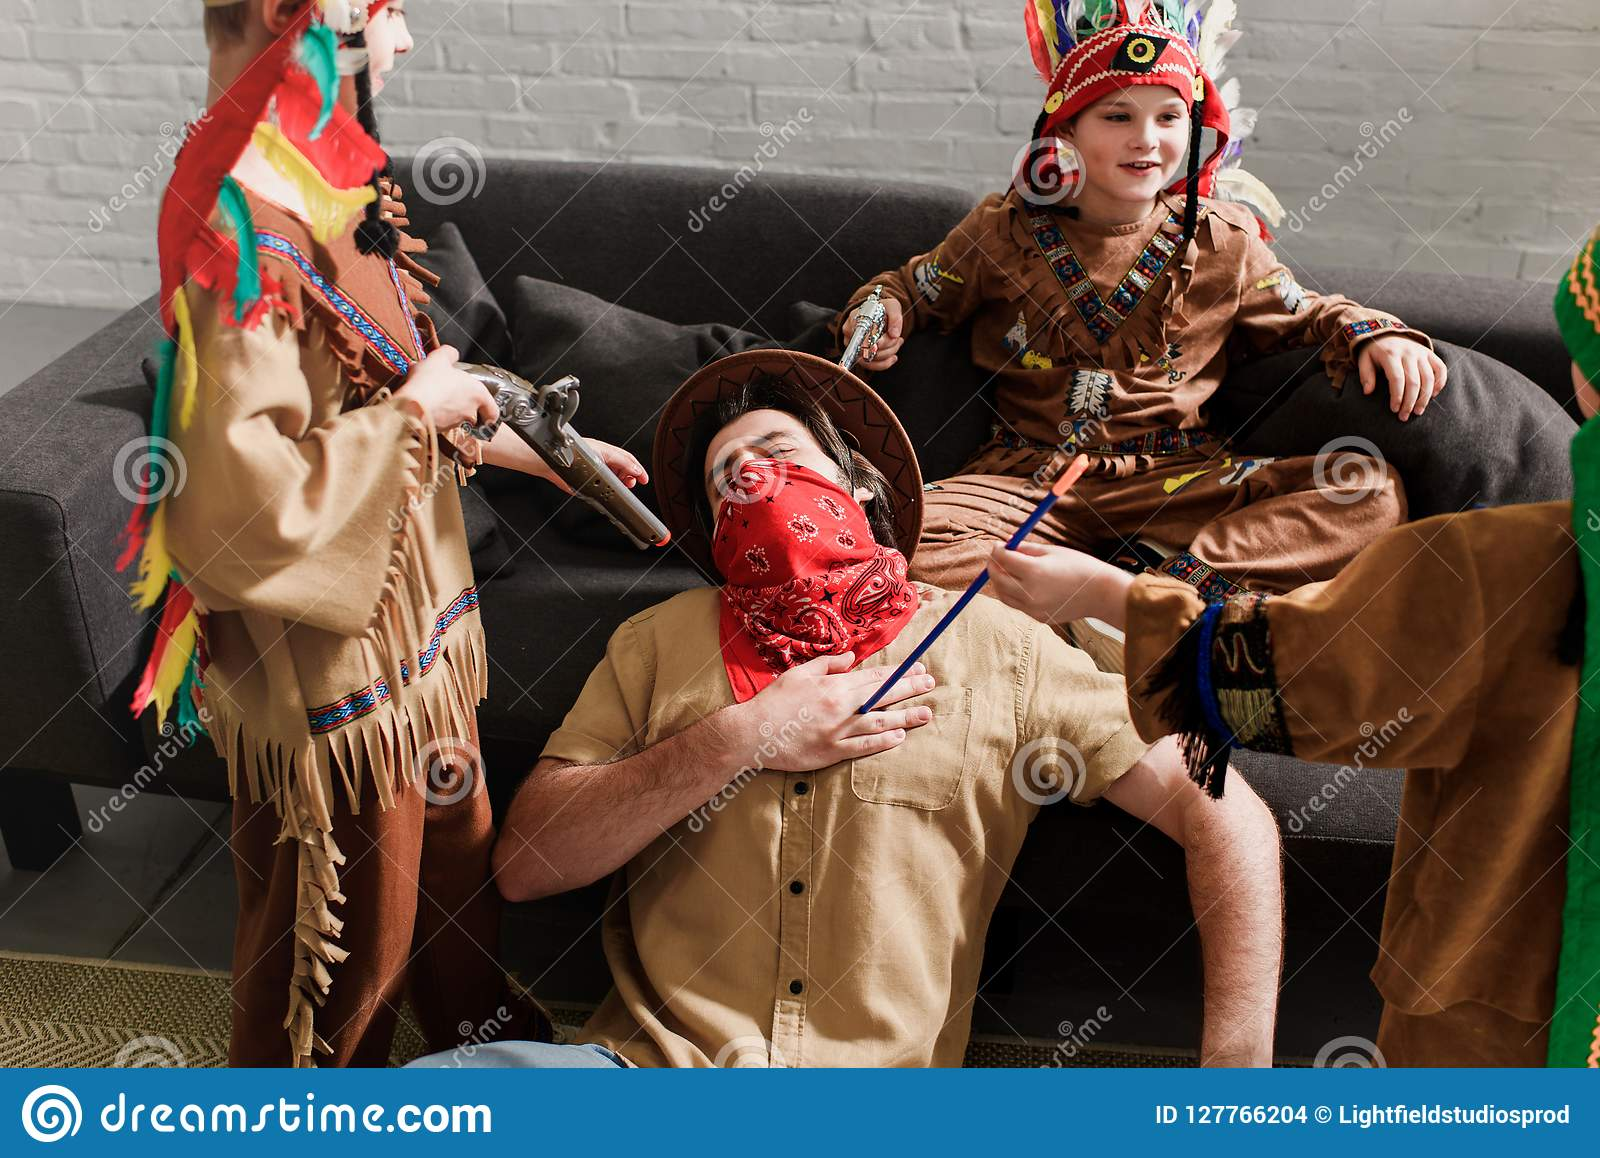 Man In Hat And Red Bandana Playing Together With Sons In Indigenous